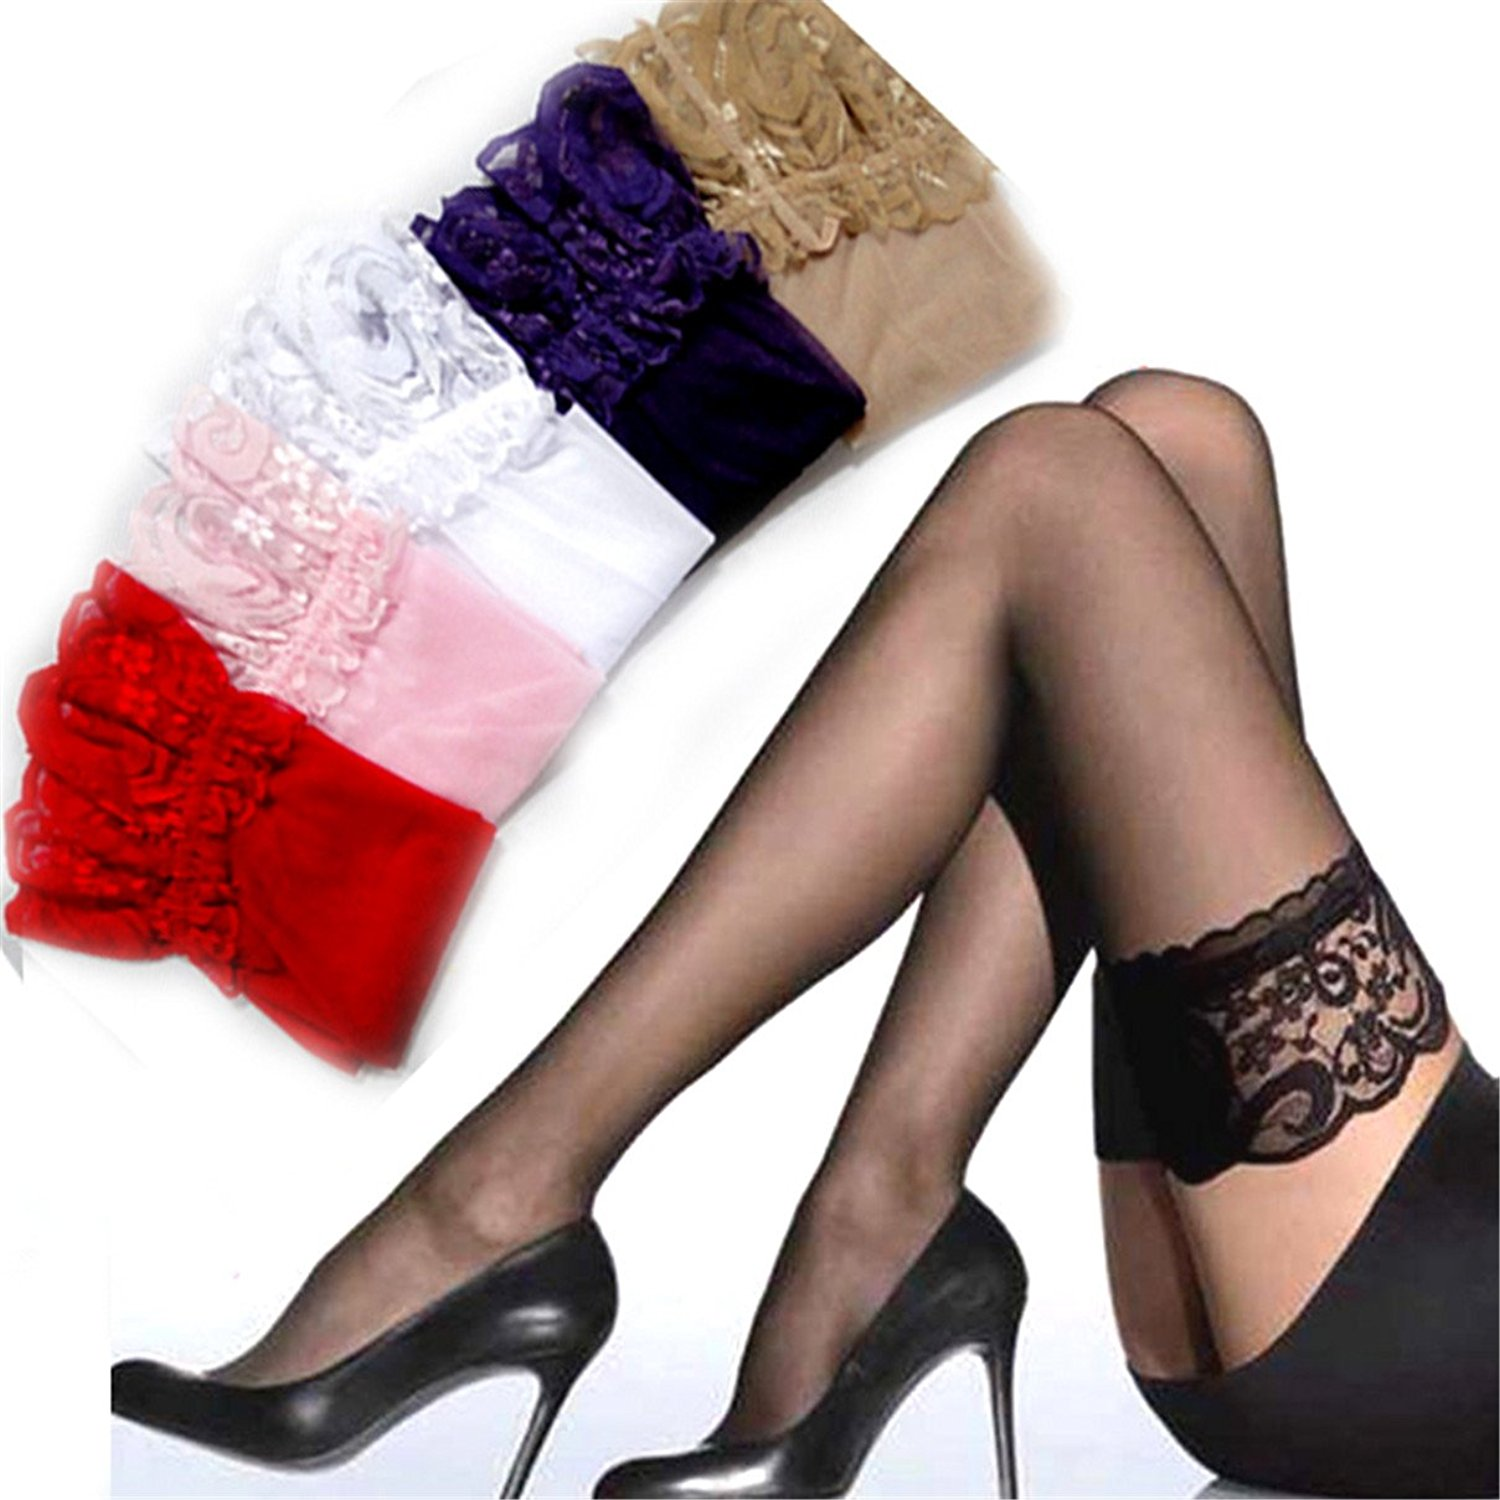 58c6b2d16 Get Quotations · TBWIGA Sexy Women color Tights Summer Stockings Lace nylon  Top Thigh High Ultra Sheer Knee High